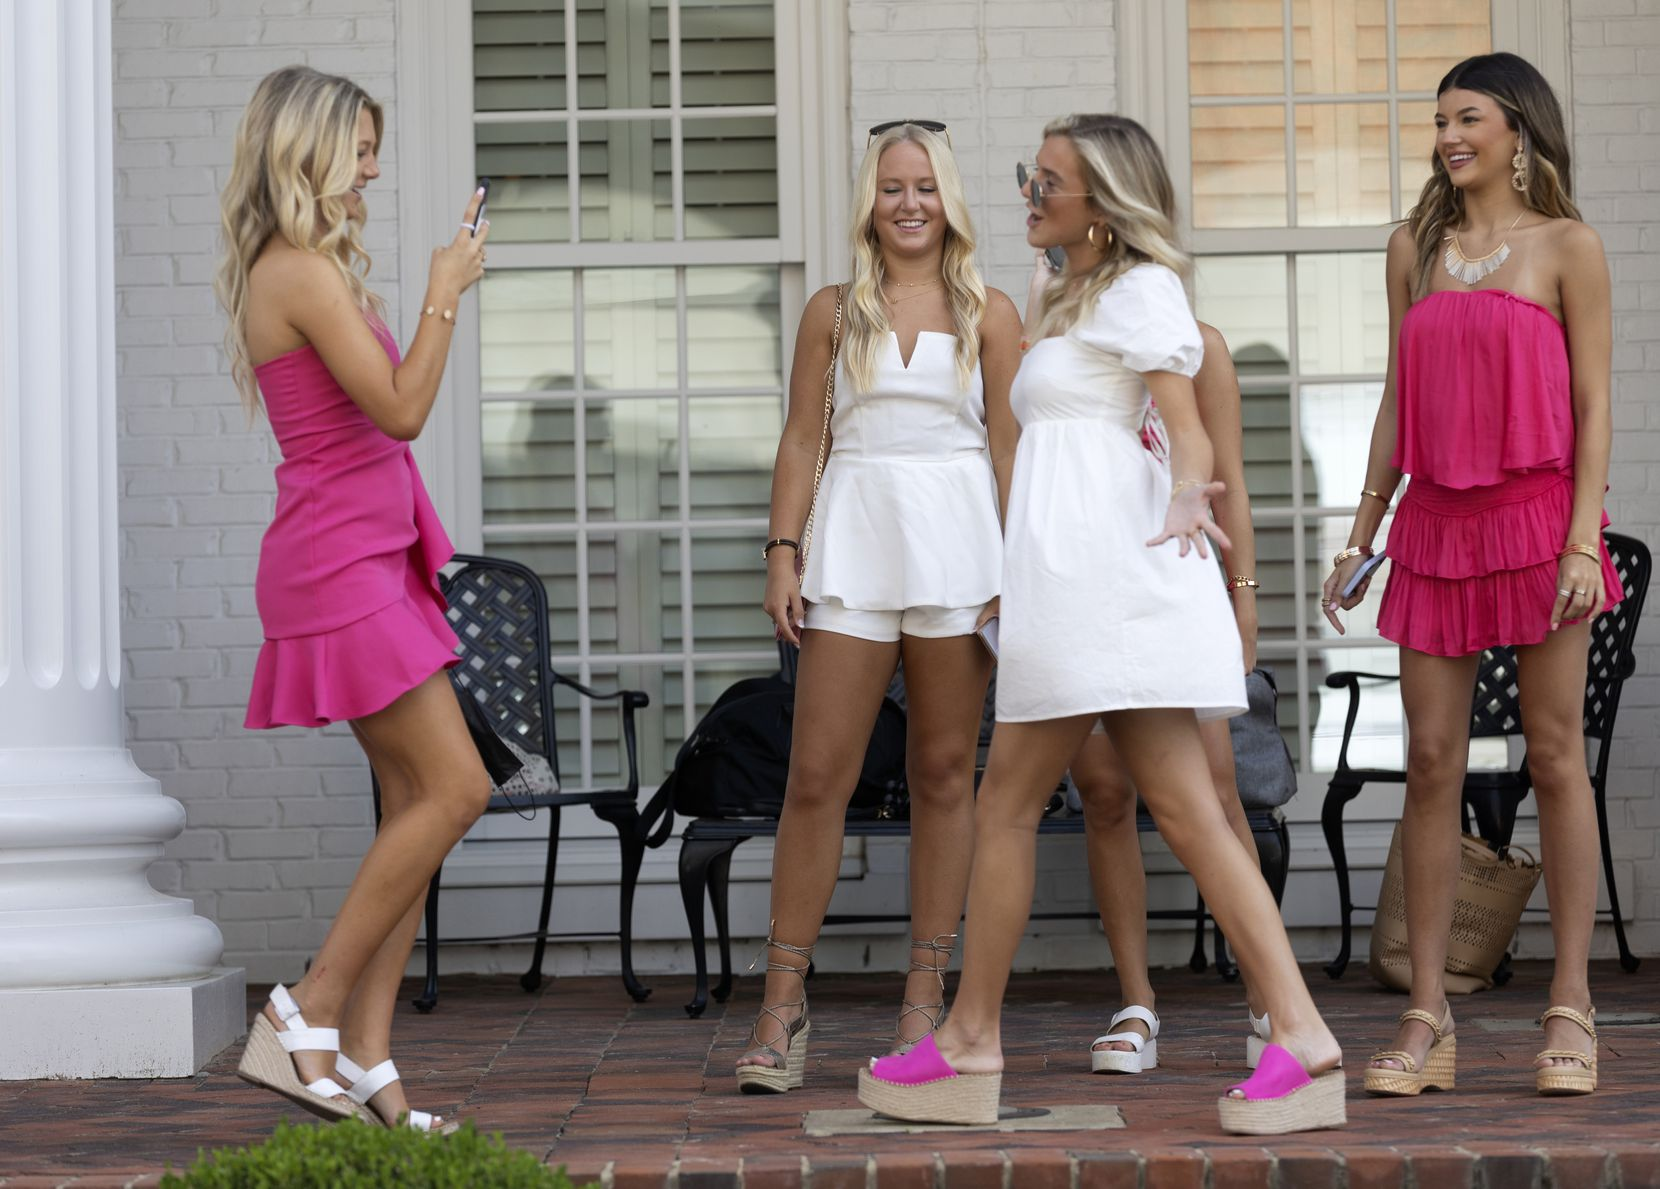 A group of Phi Mu sorority sisters take photos on the morning of bid day on the front steps of their sorority house during University of Alabama's rush week on Aug. 15  in Tuscaloosa, Ala.